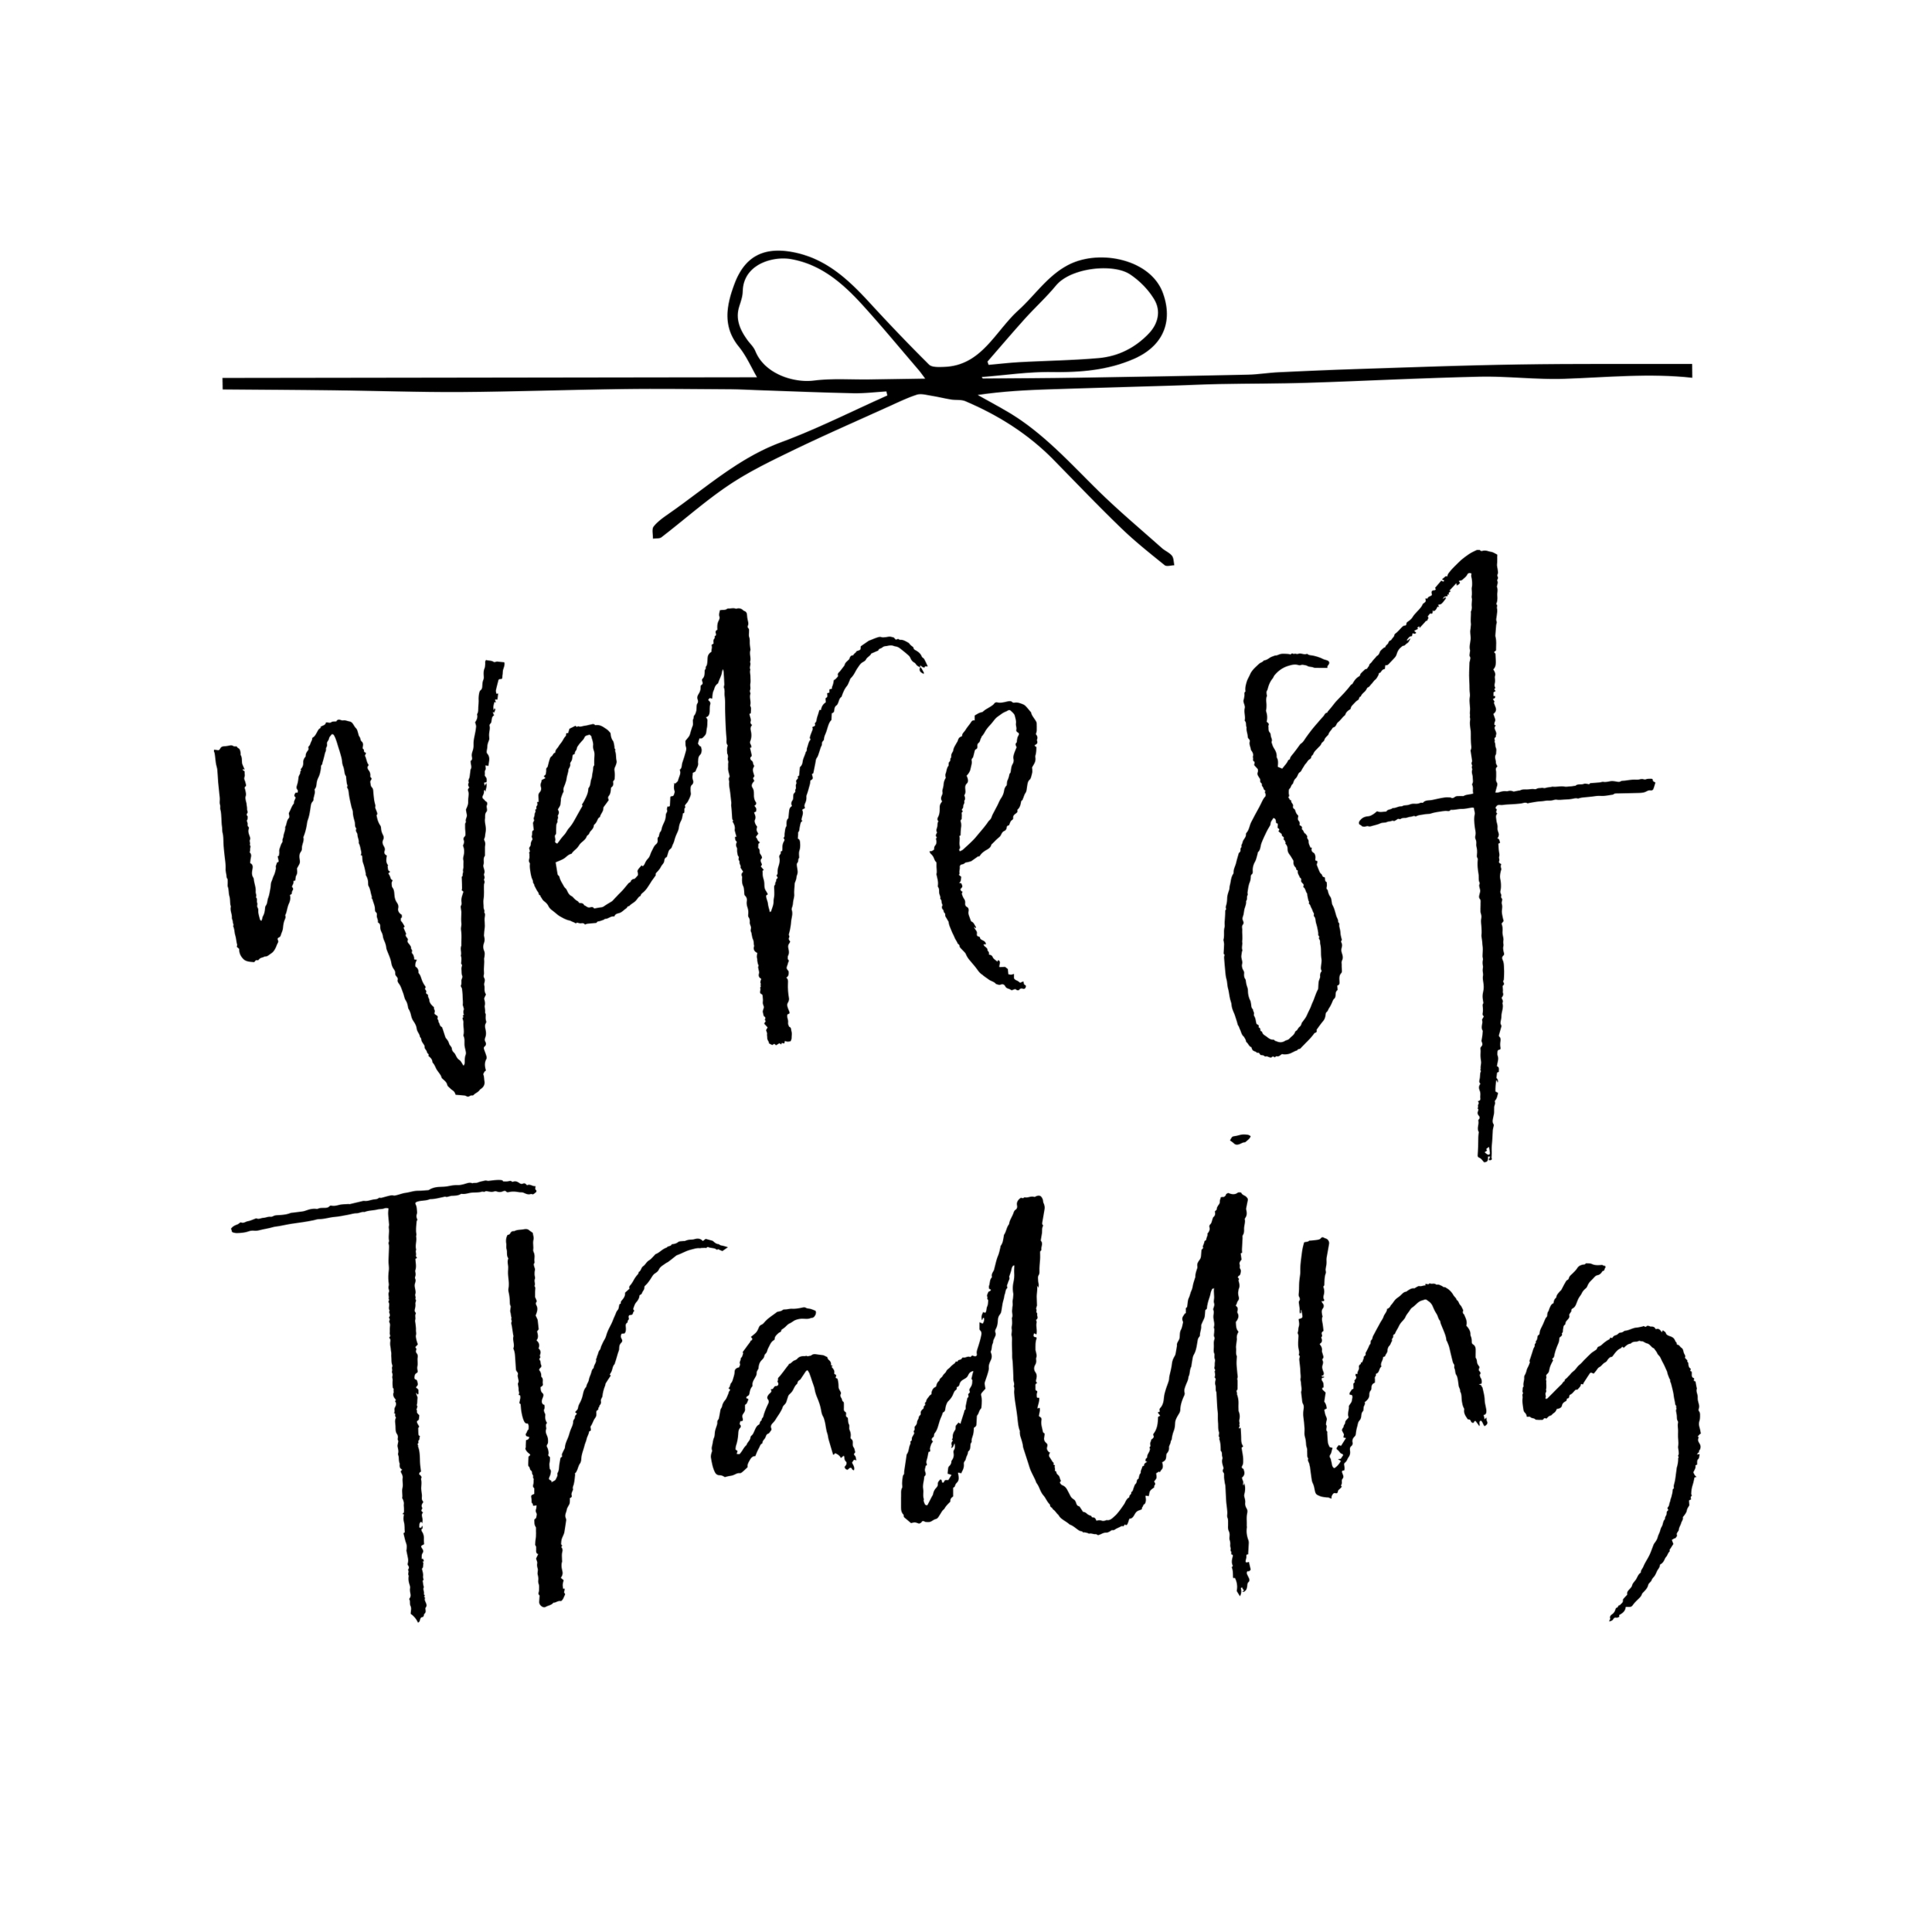 WERE ST TRADING.png